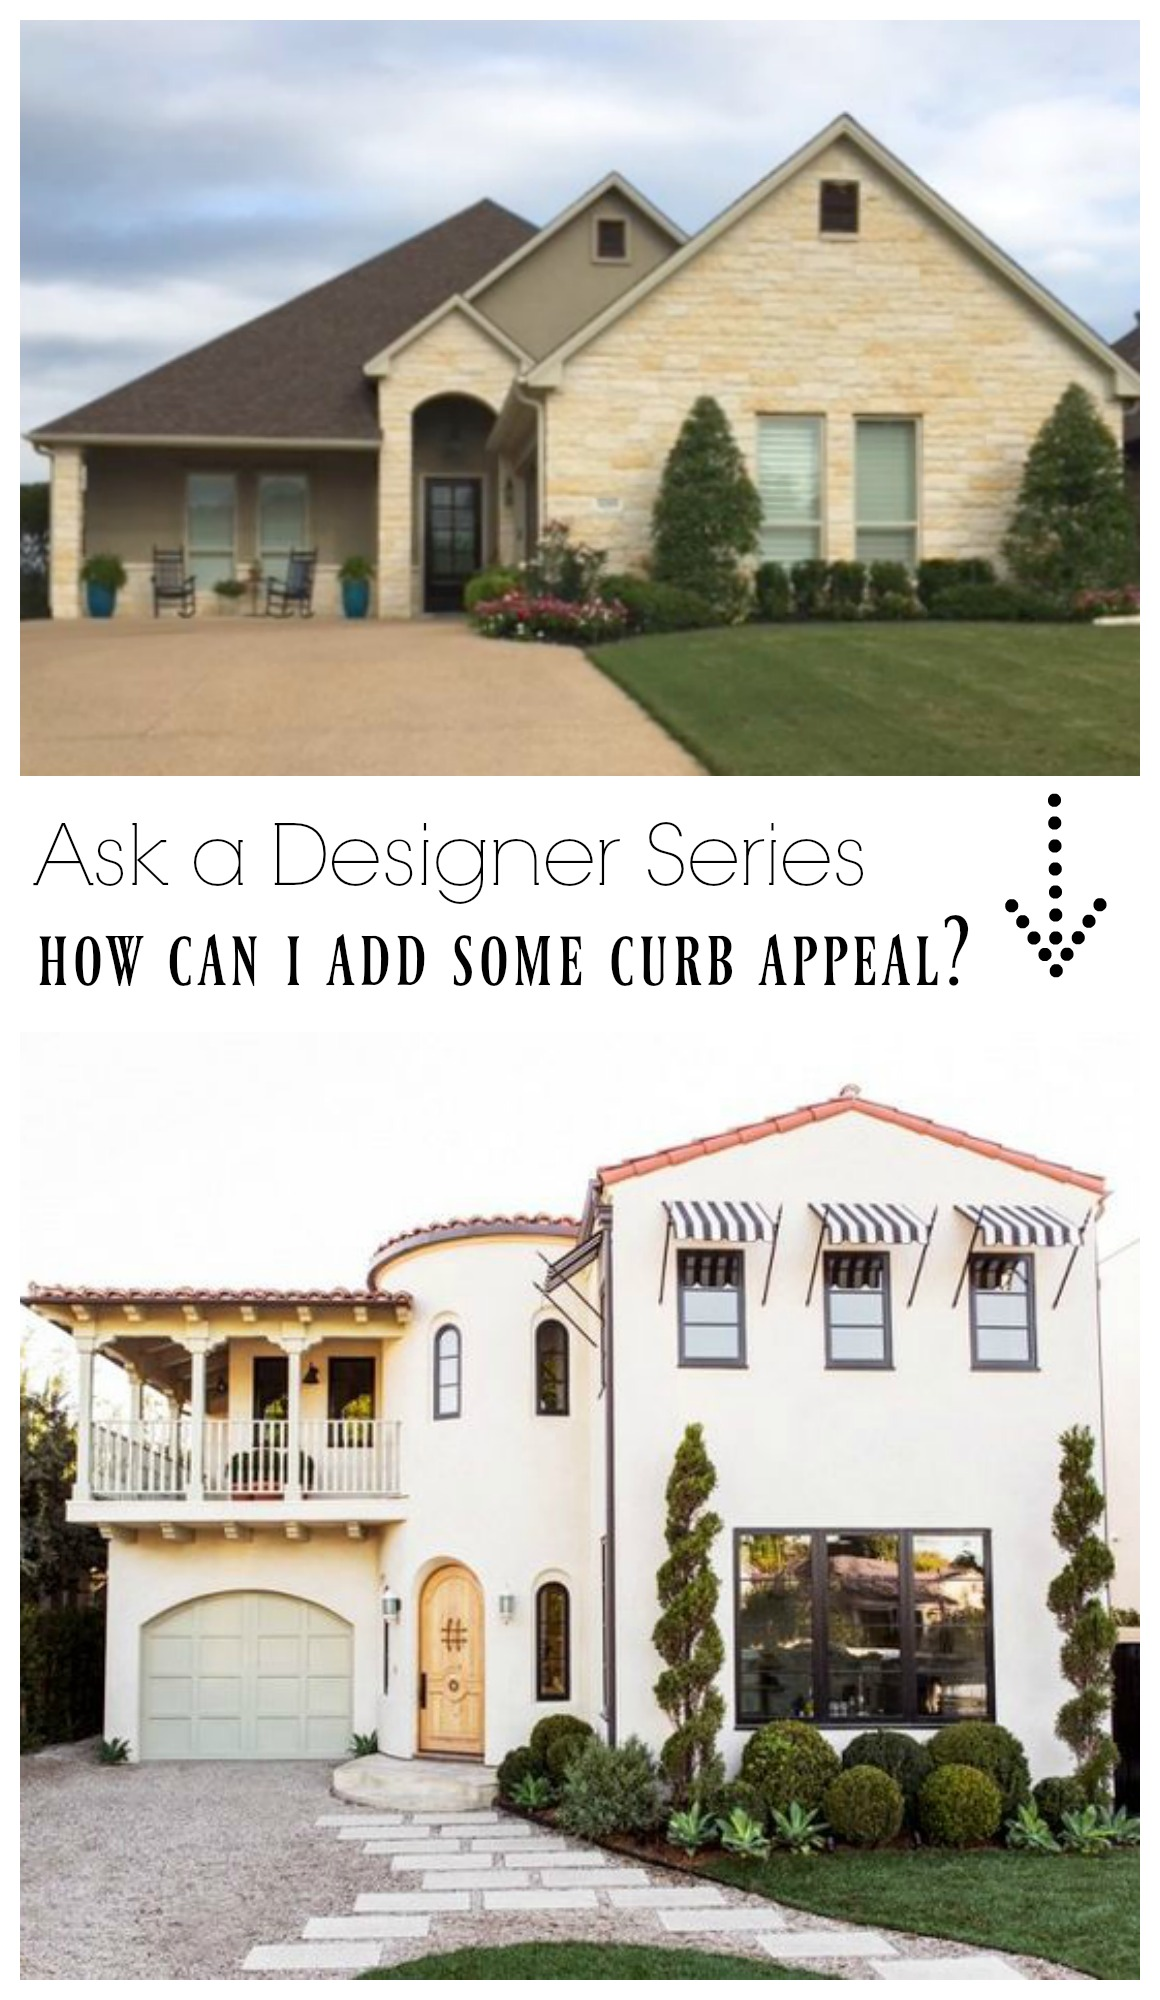 Ask a Designer Series- How can I add some curb appeal?